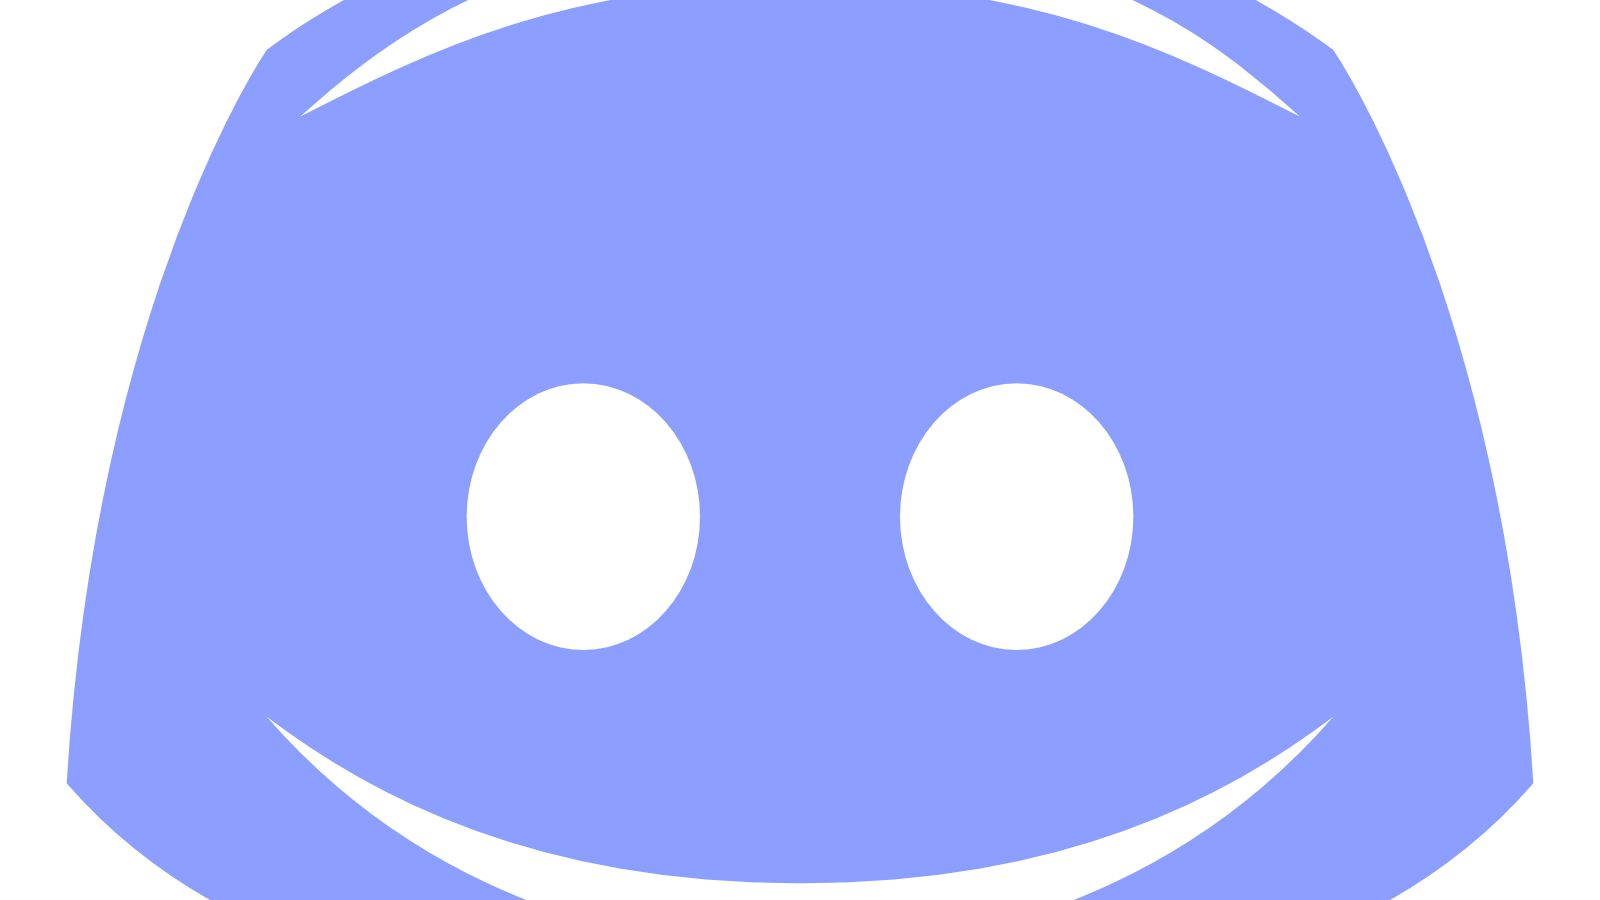 Discord face icon